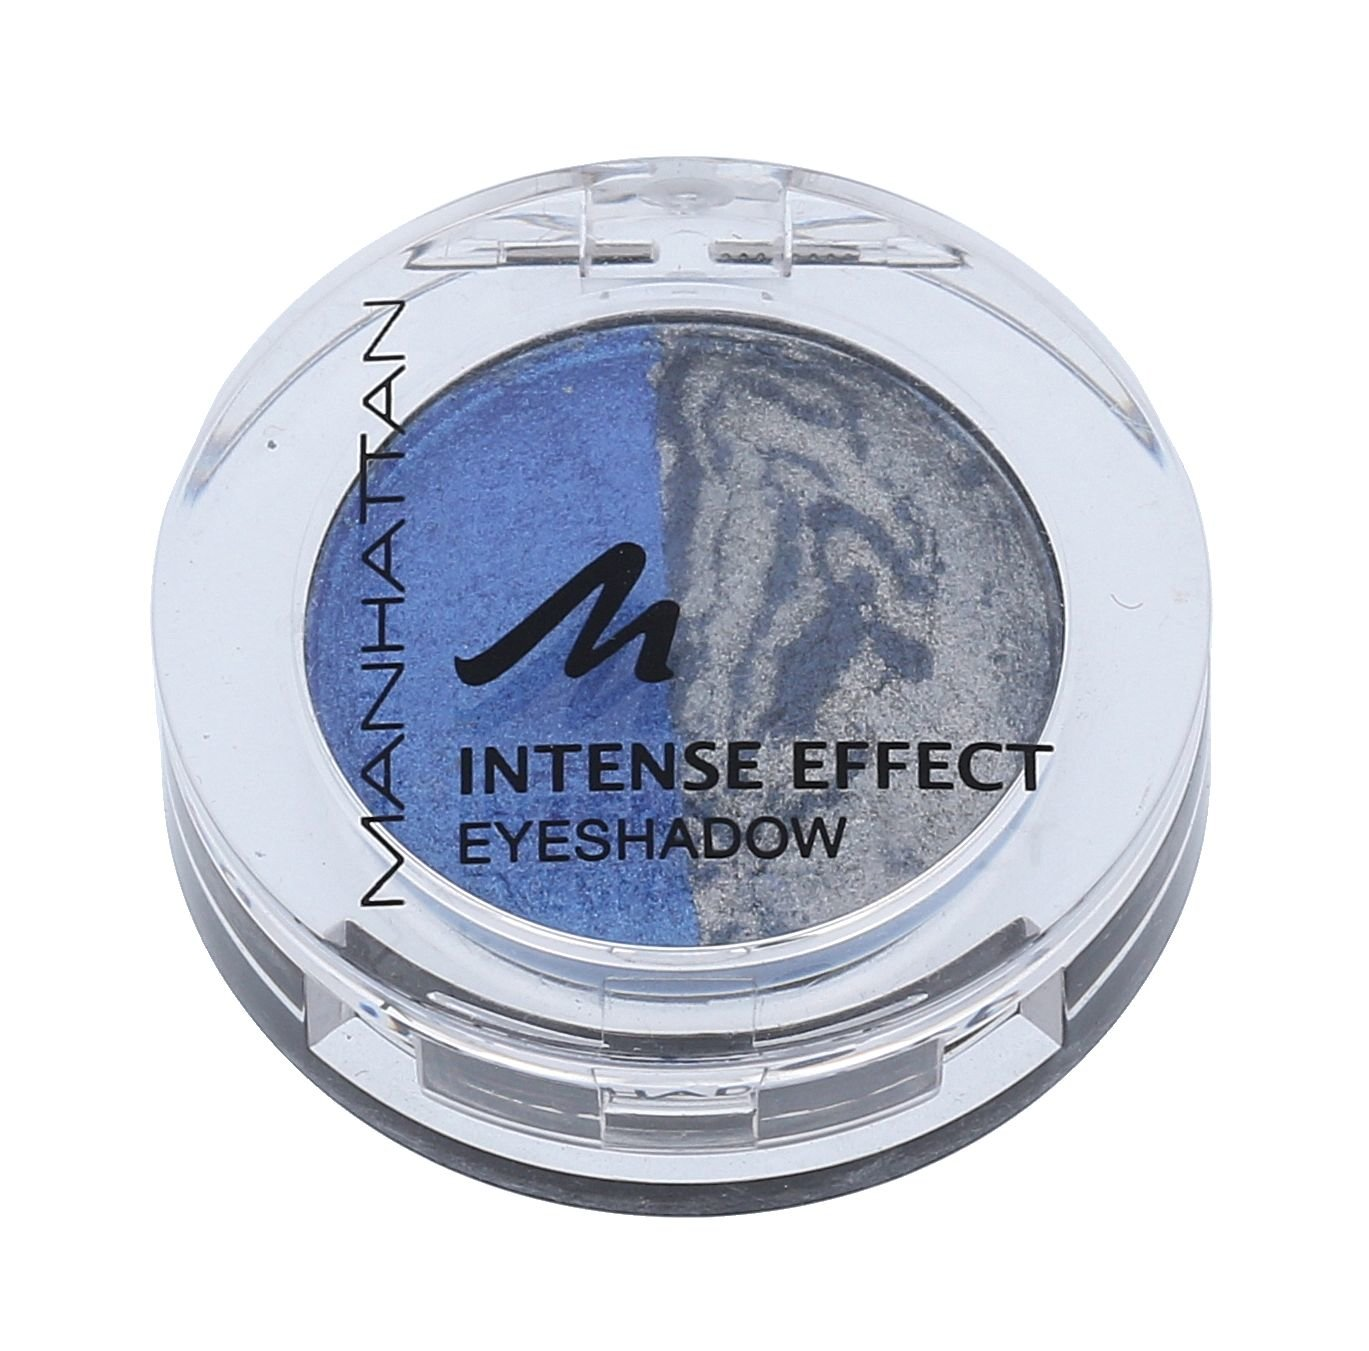 Manhattan Intense Effect Cosmetic 4ml 101H/77M Blue Is Back